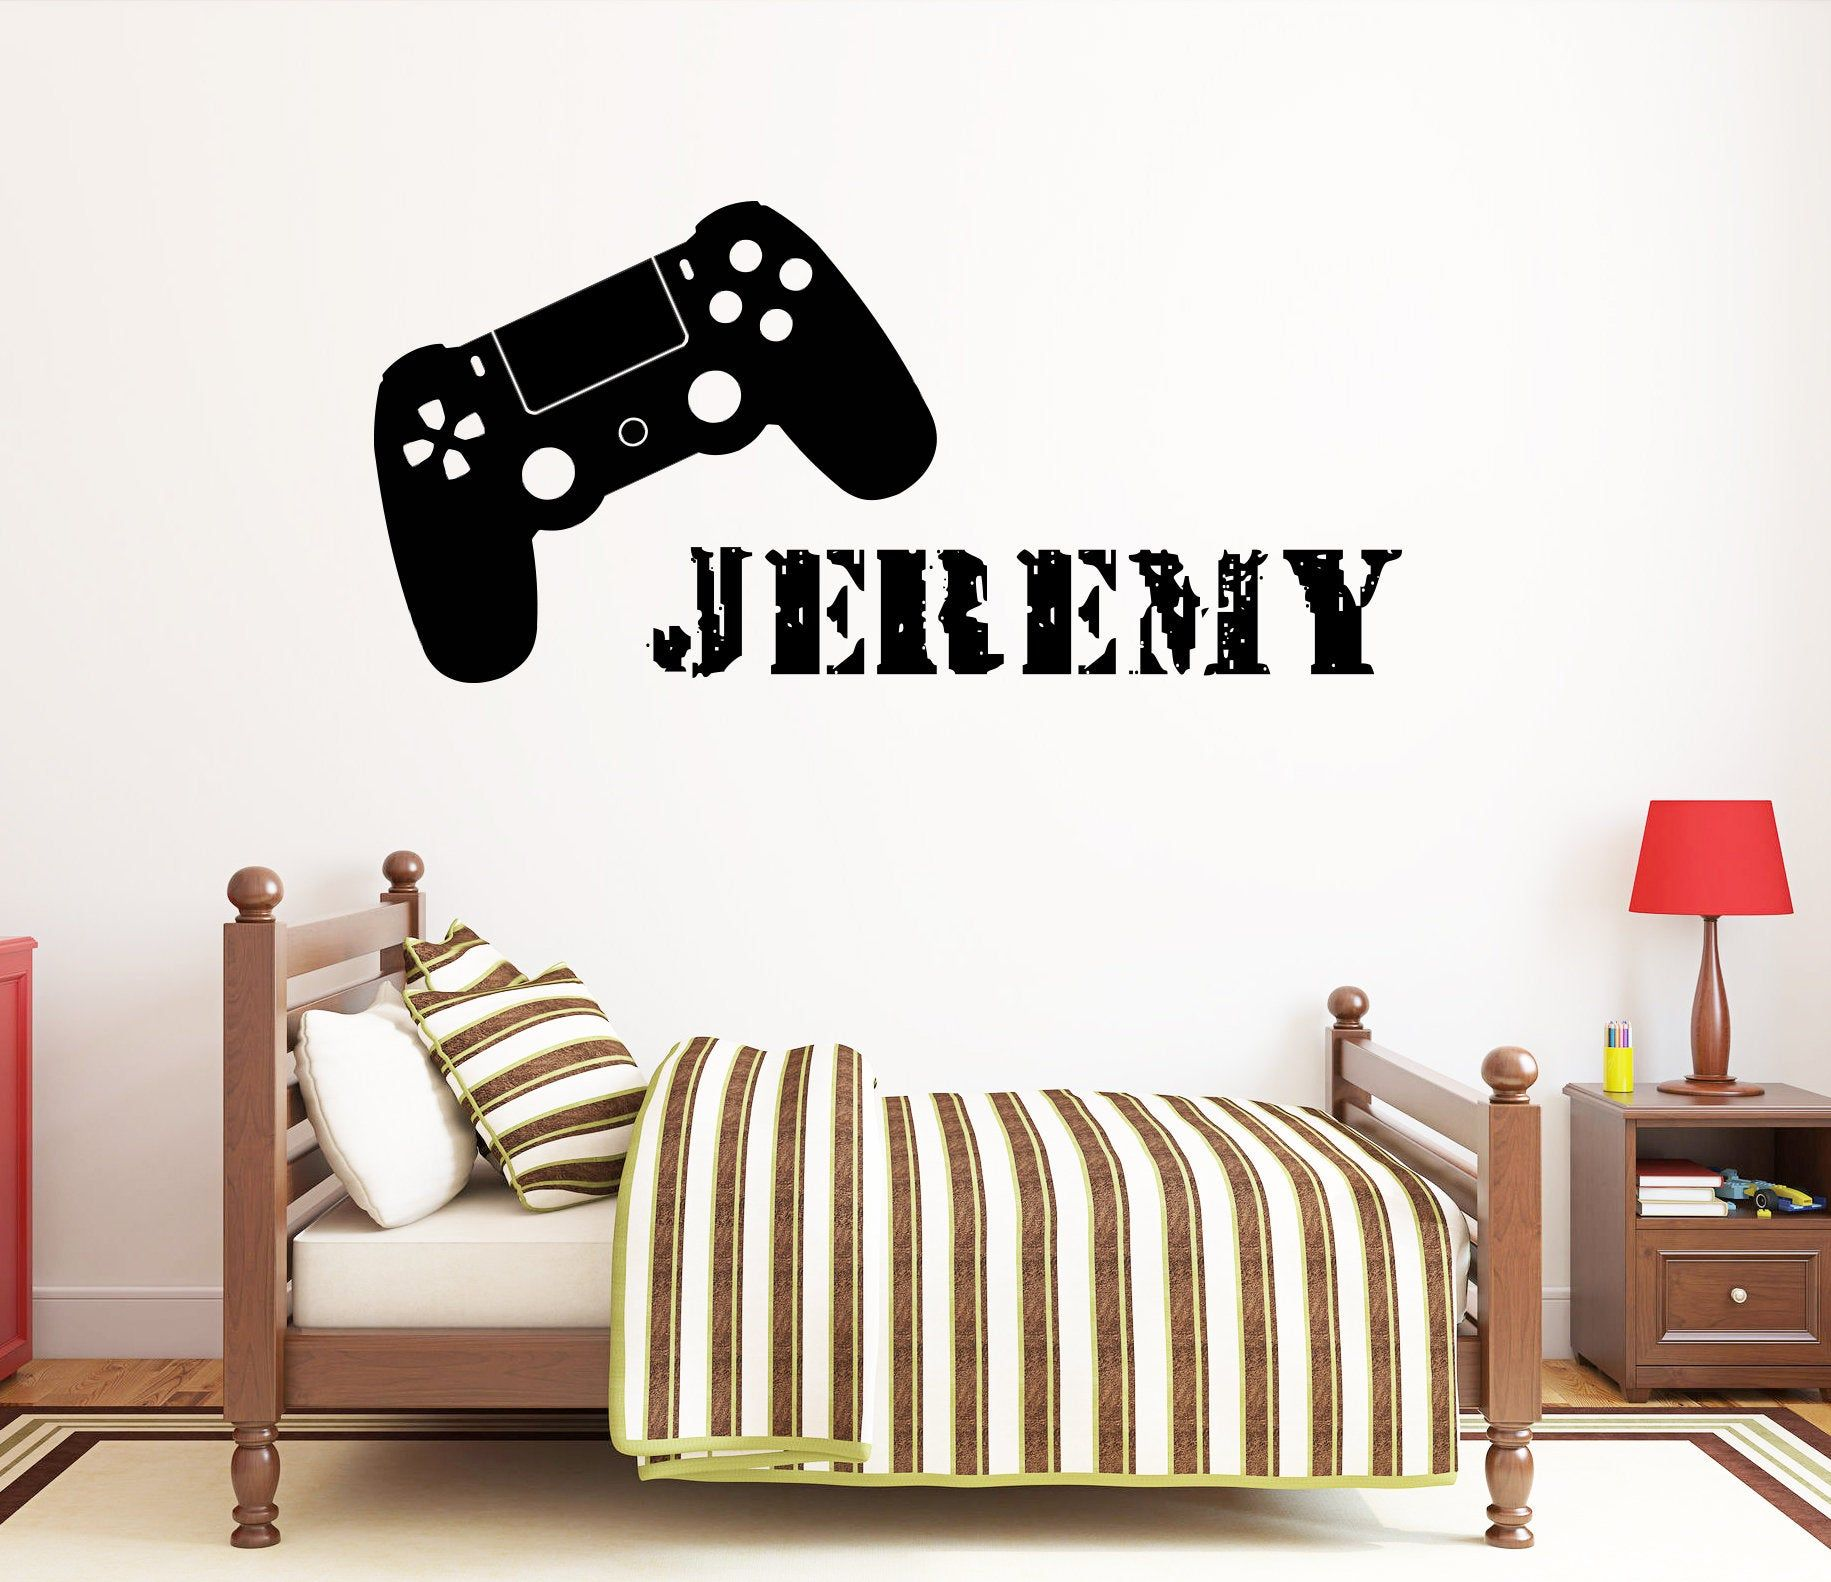 Gamer Wall Decal Video Games Wall Sticker Playstation Ps4 Etsy Baby Room Decals Wall Decals Wall Sticker